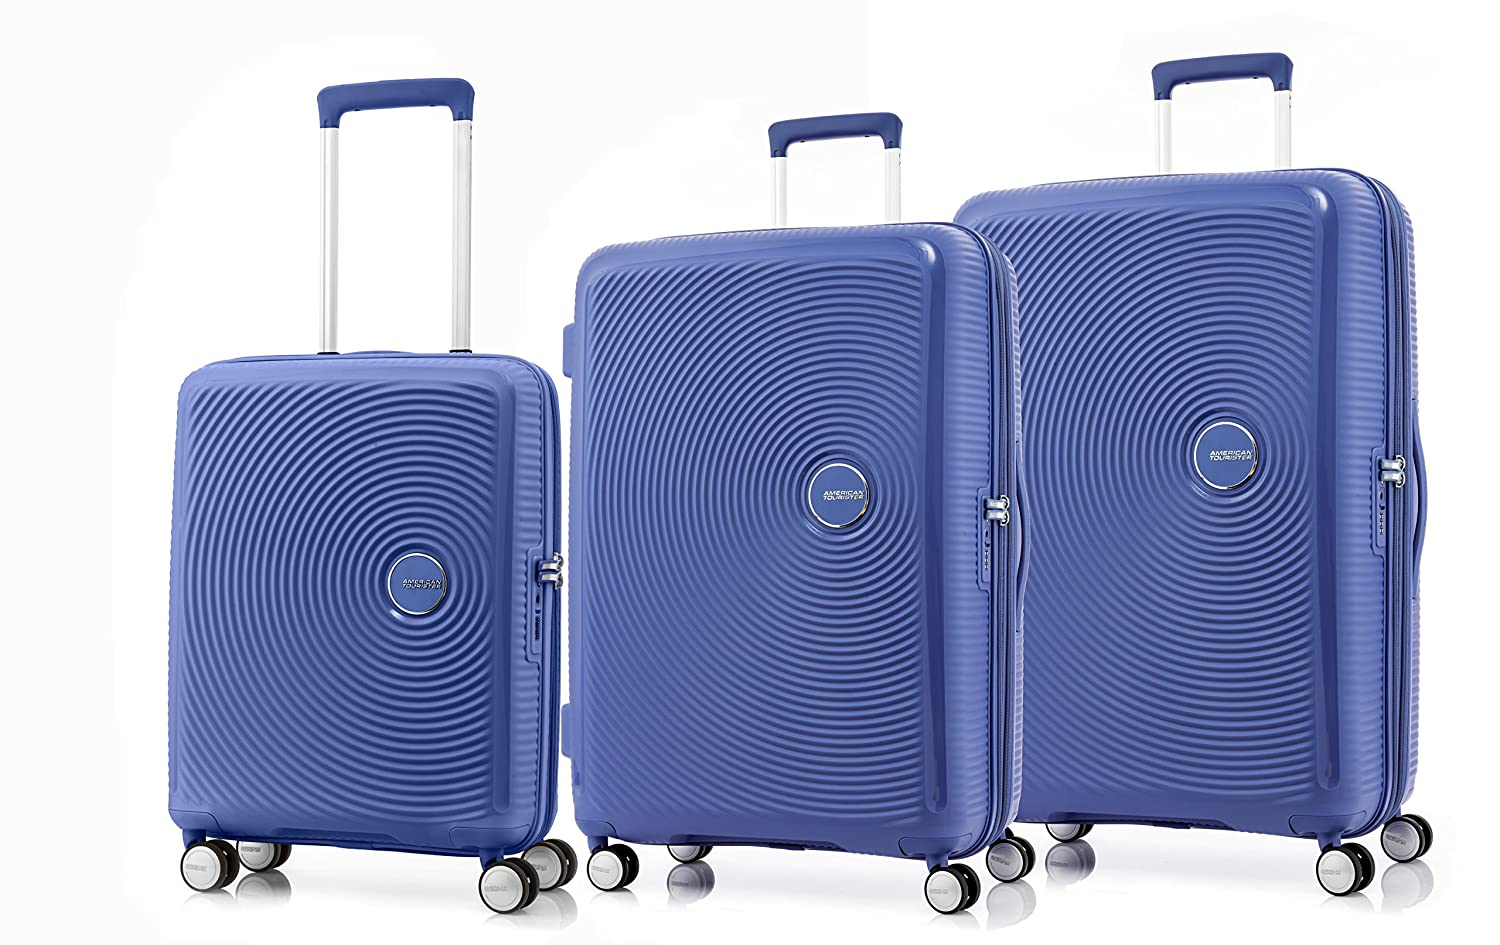 b393c8103 American Tourister Curio Spinner 3-Piece Nested Luggage Set, Denim Blue,  Checked-Medium (Model:86231-1292): Amazon.ca: Luggage & Bags